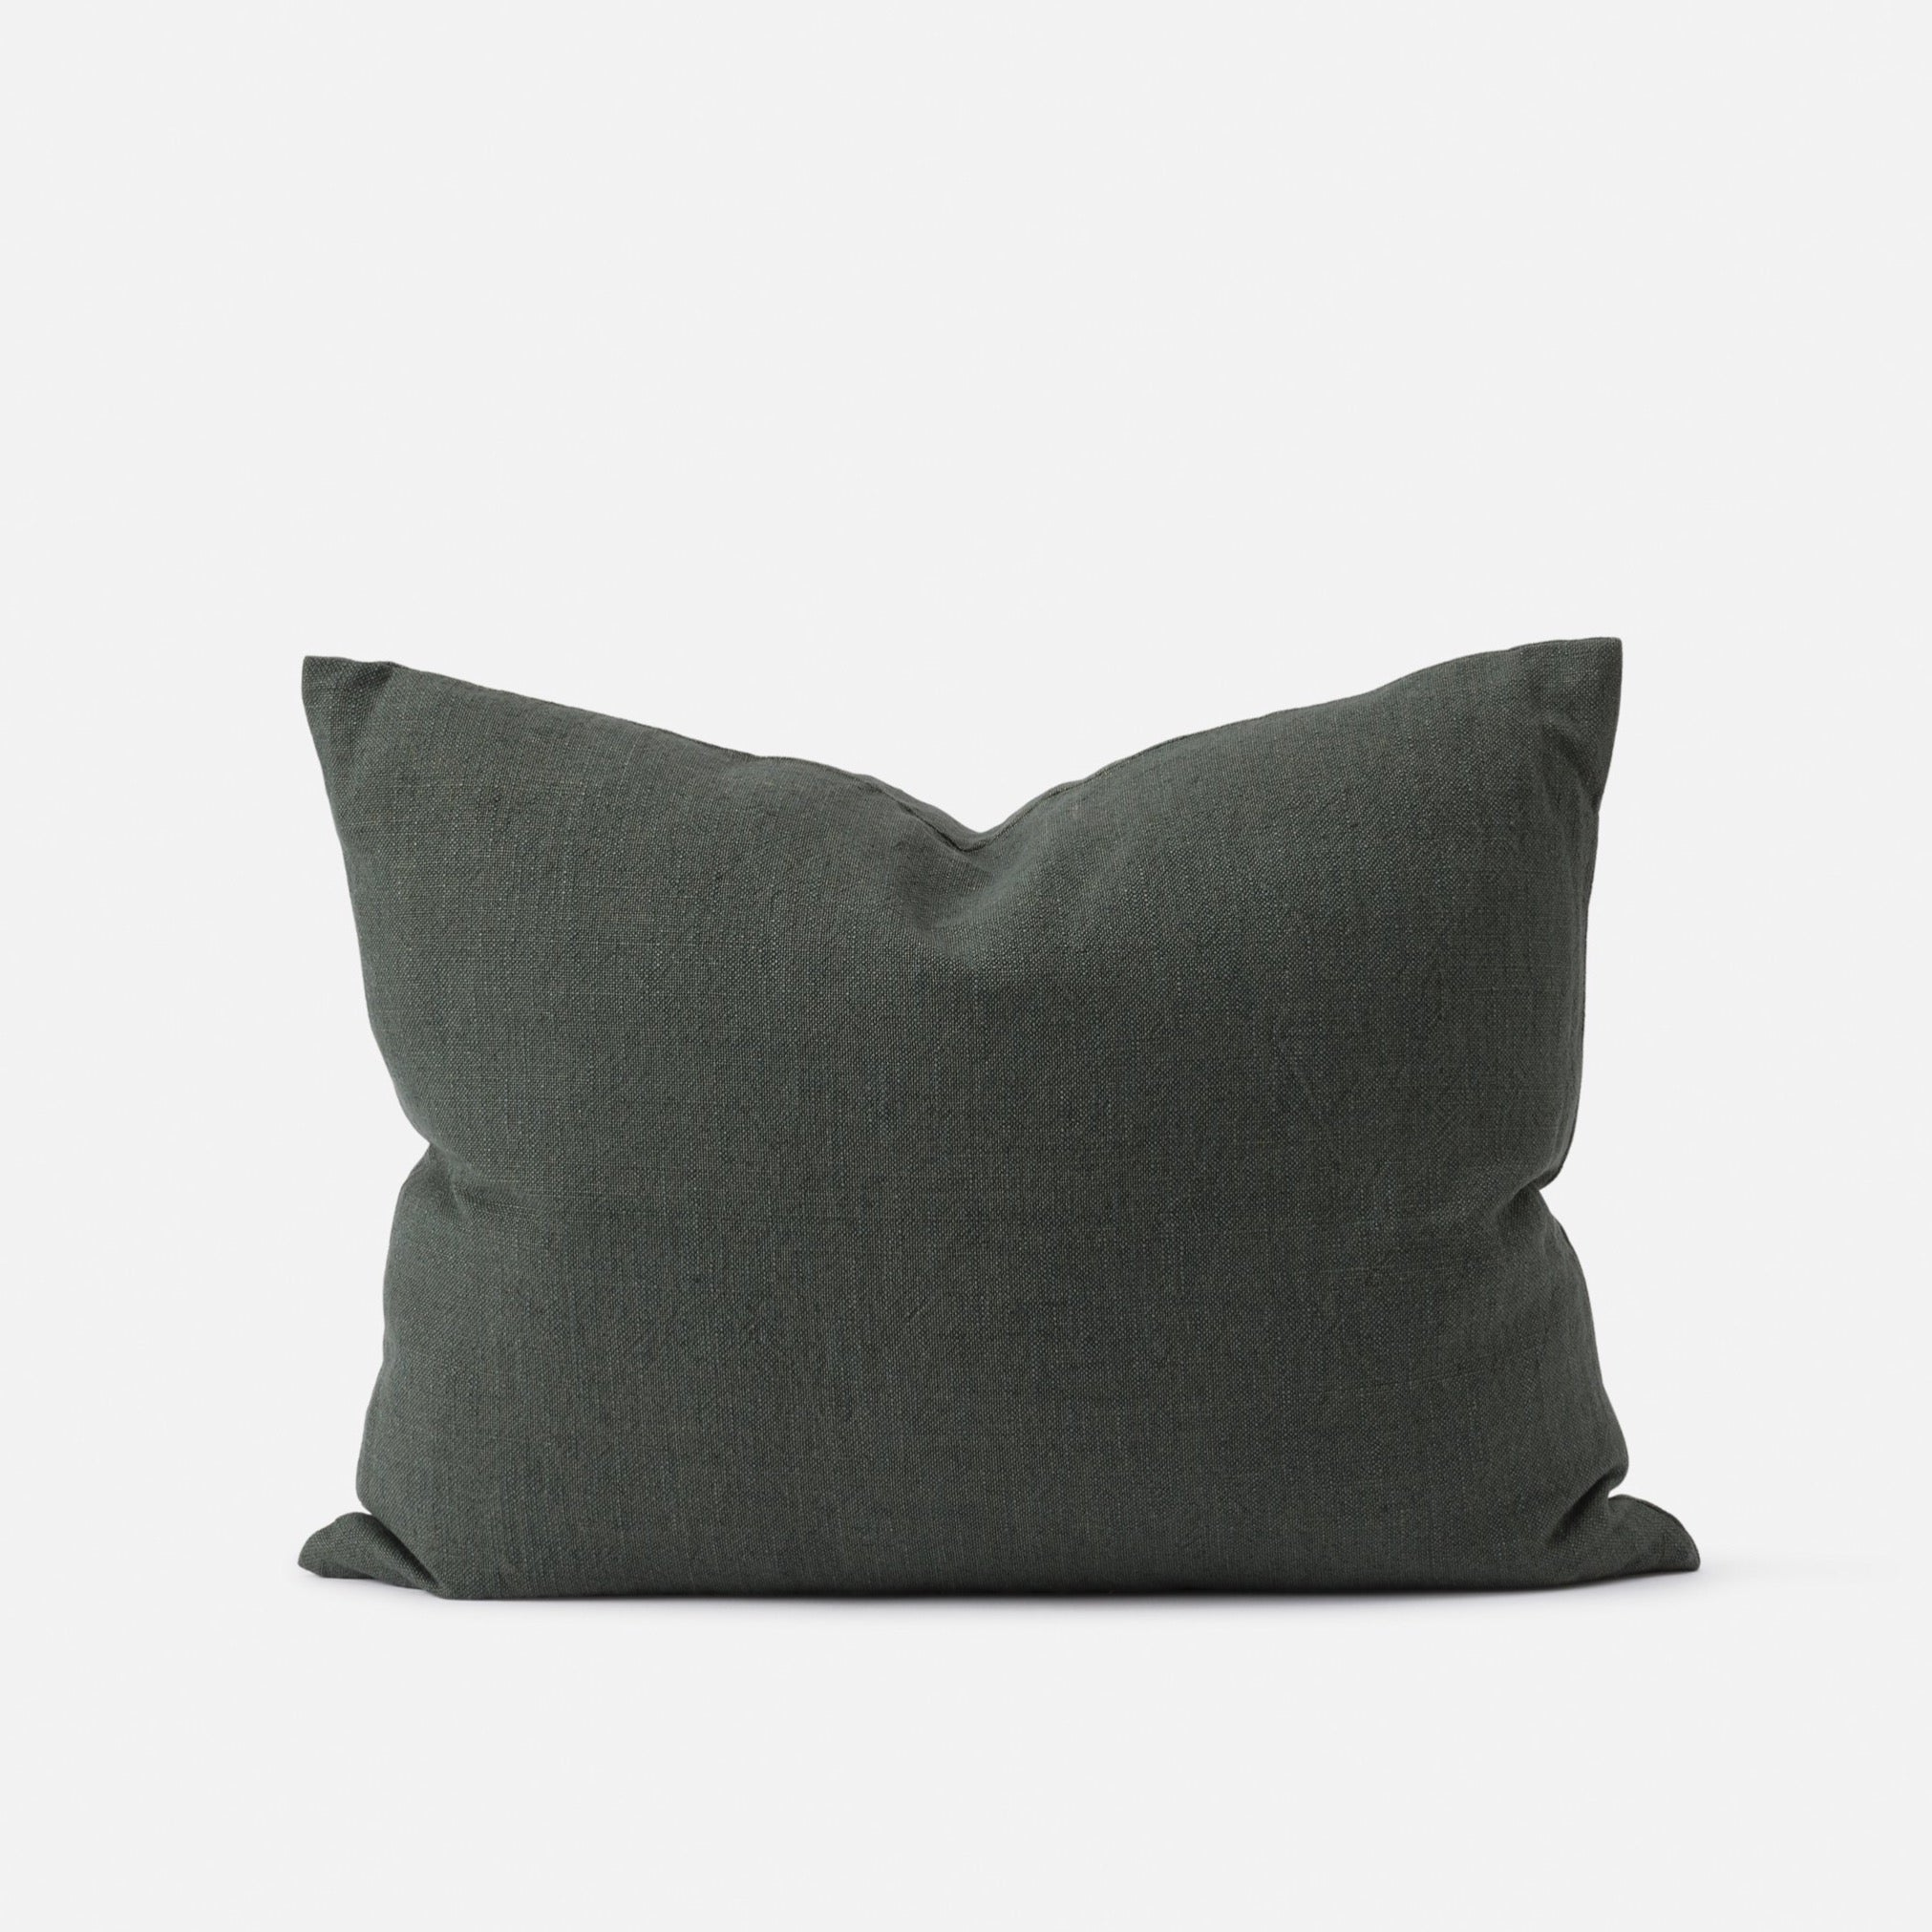 Handwoven Cushion Nori